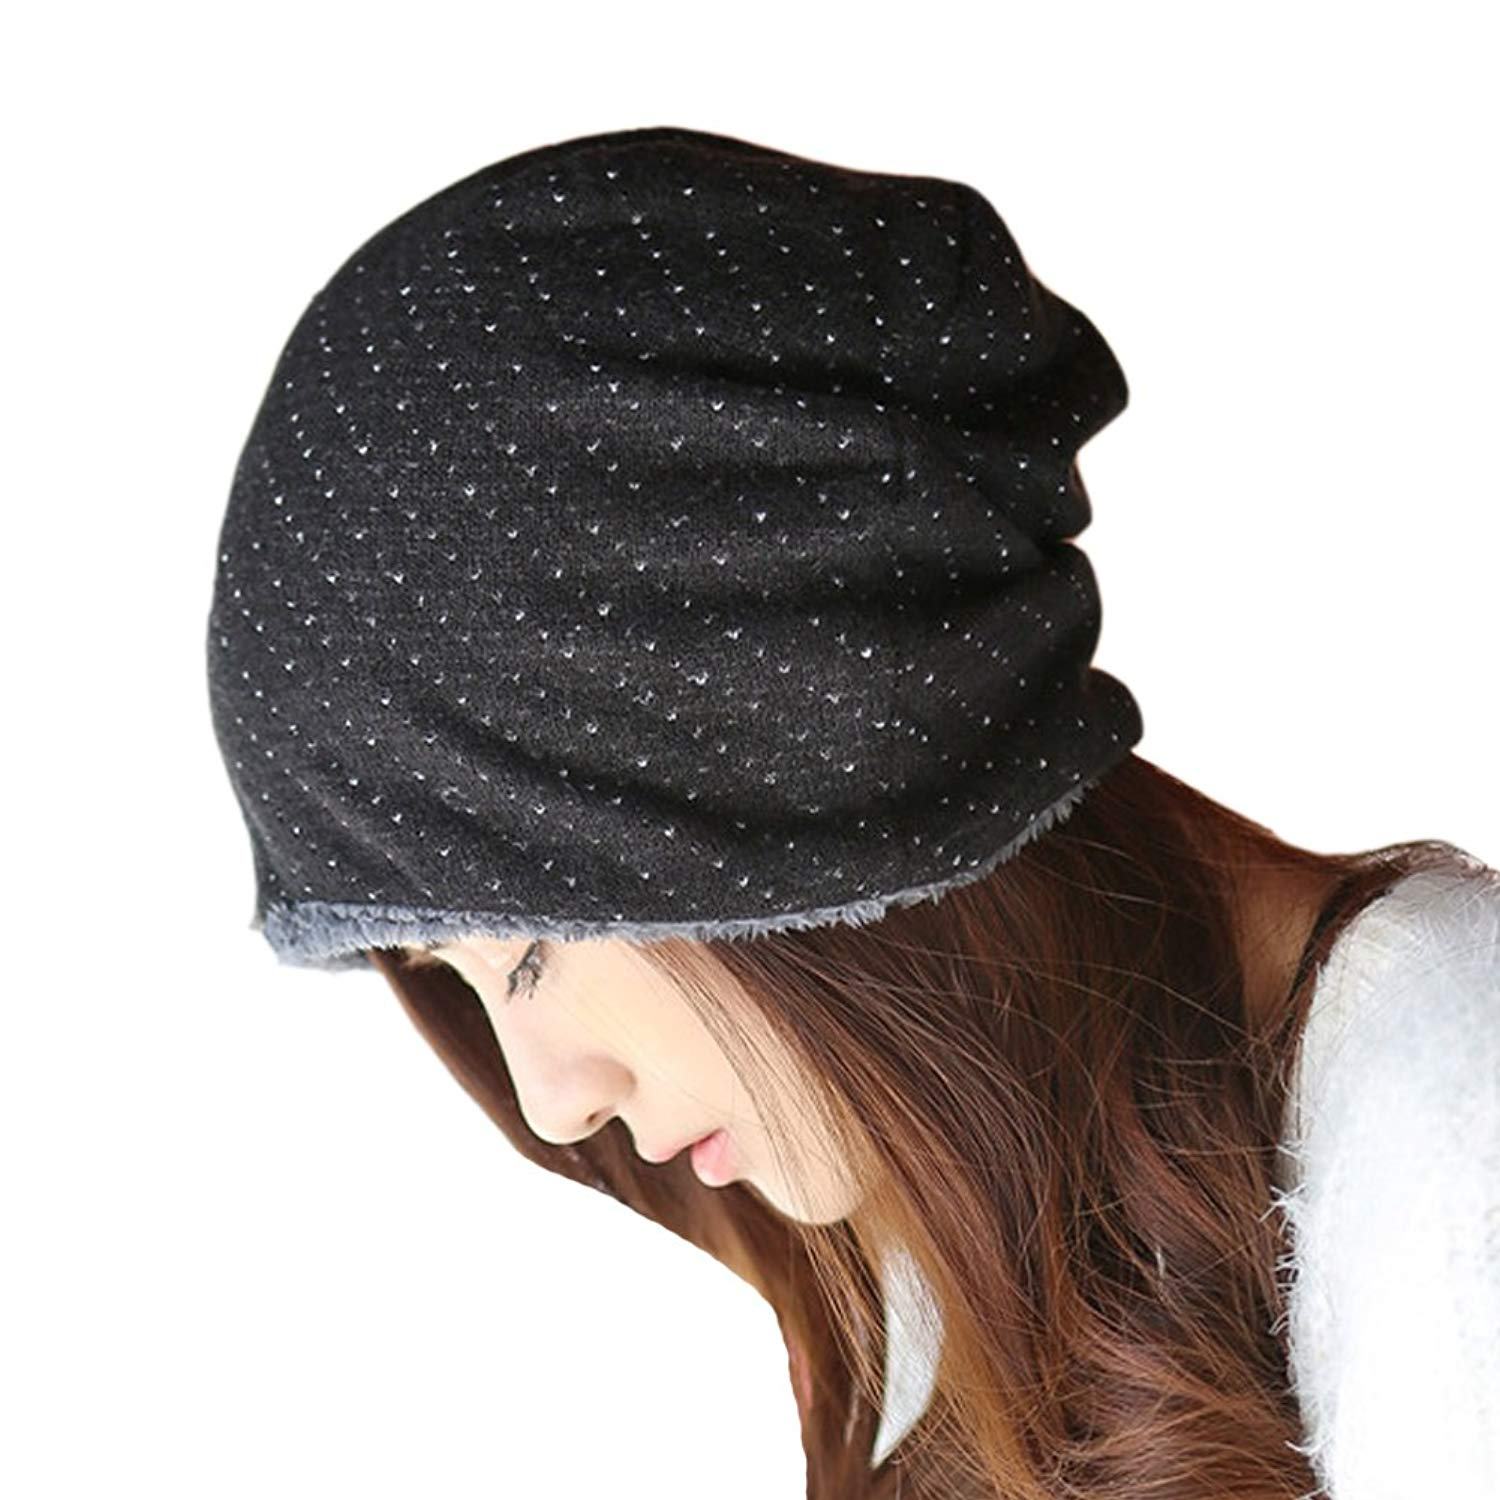 0326a147634 Get Quotations · Women s Winter Thicken Fur Lined Polka Dot Knit Skull Ski Hat  Cap Ear Warmer